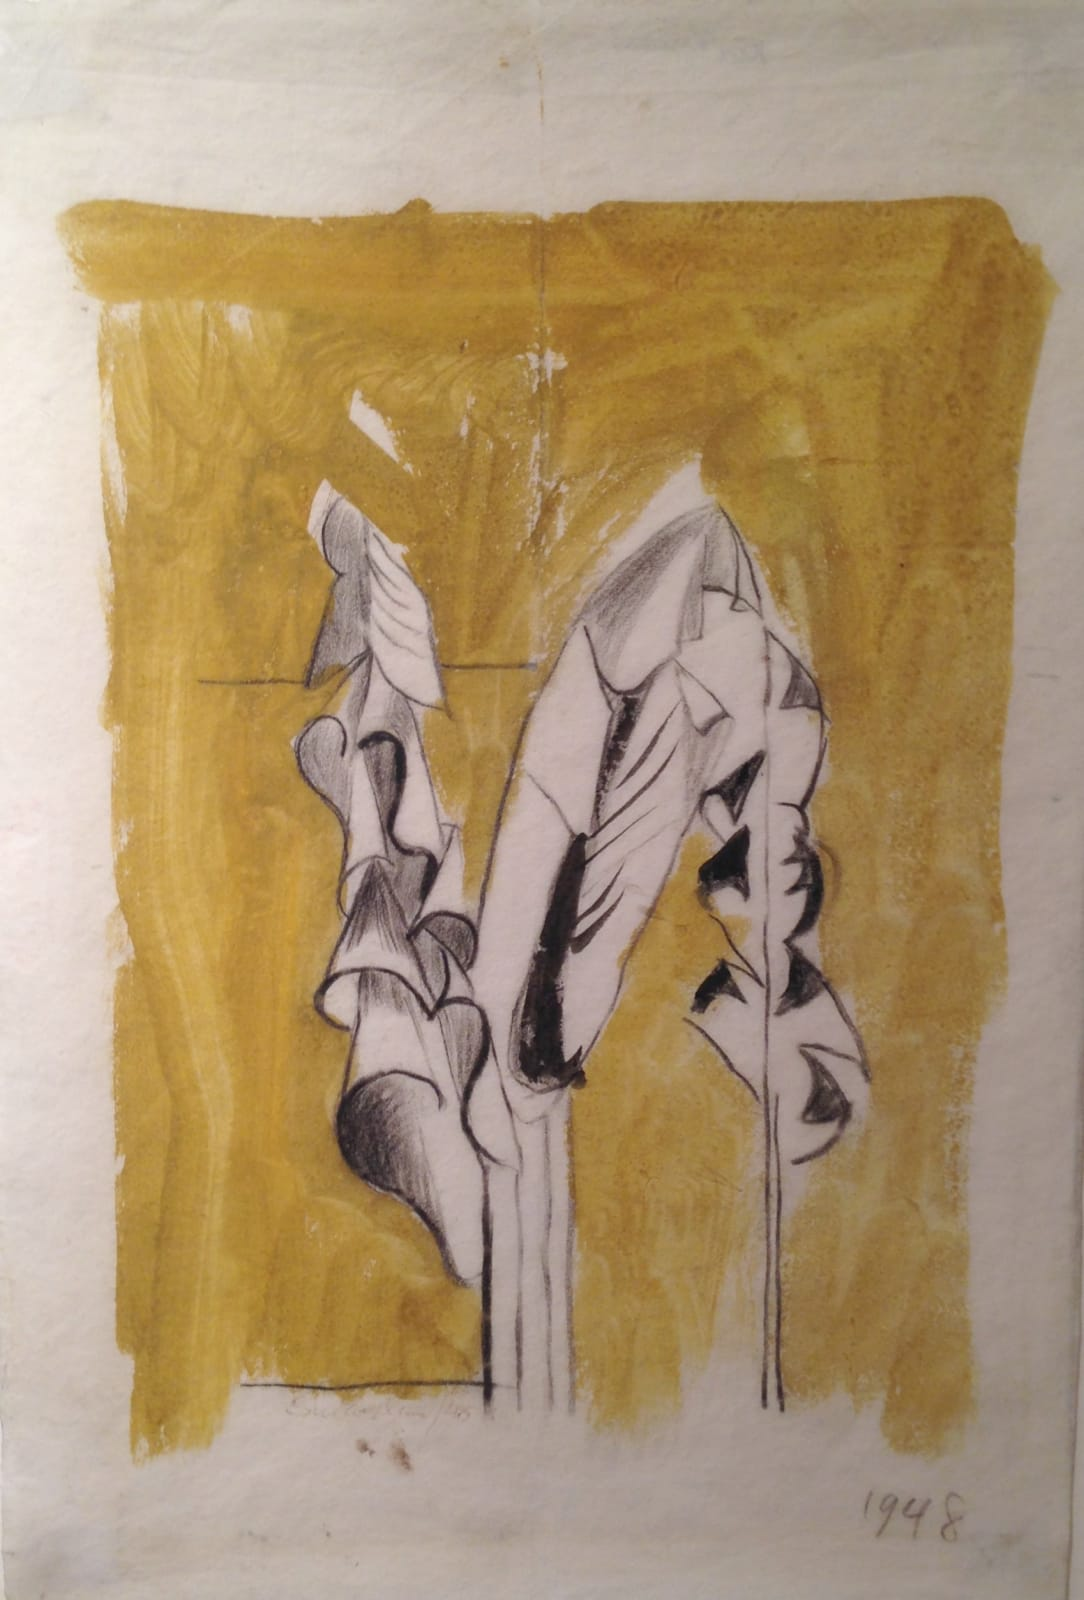 Graham SUTHERLAND (1903 – 1980) Banana Leaves, 1948 Watercolour and pencil 11 x 7 ½ inches / 27.9 x 19 cm